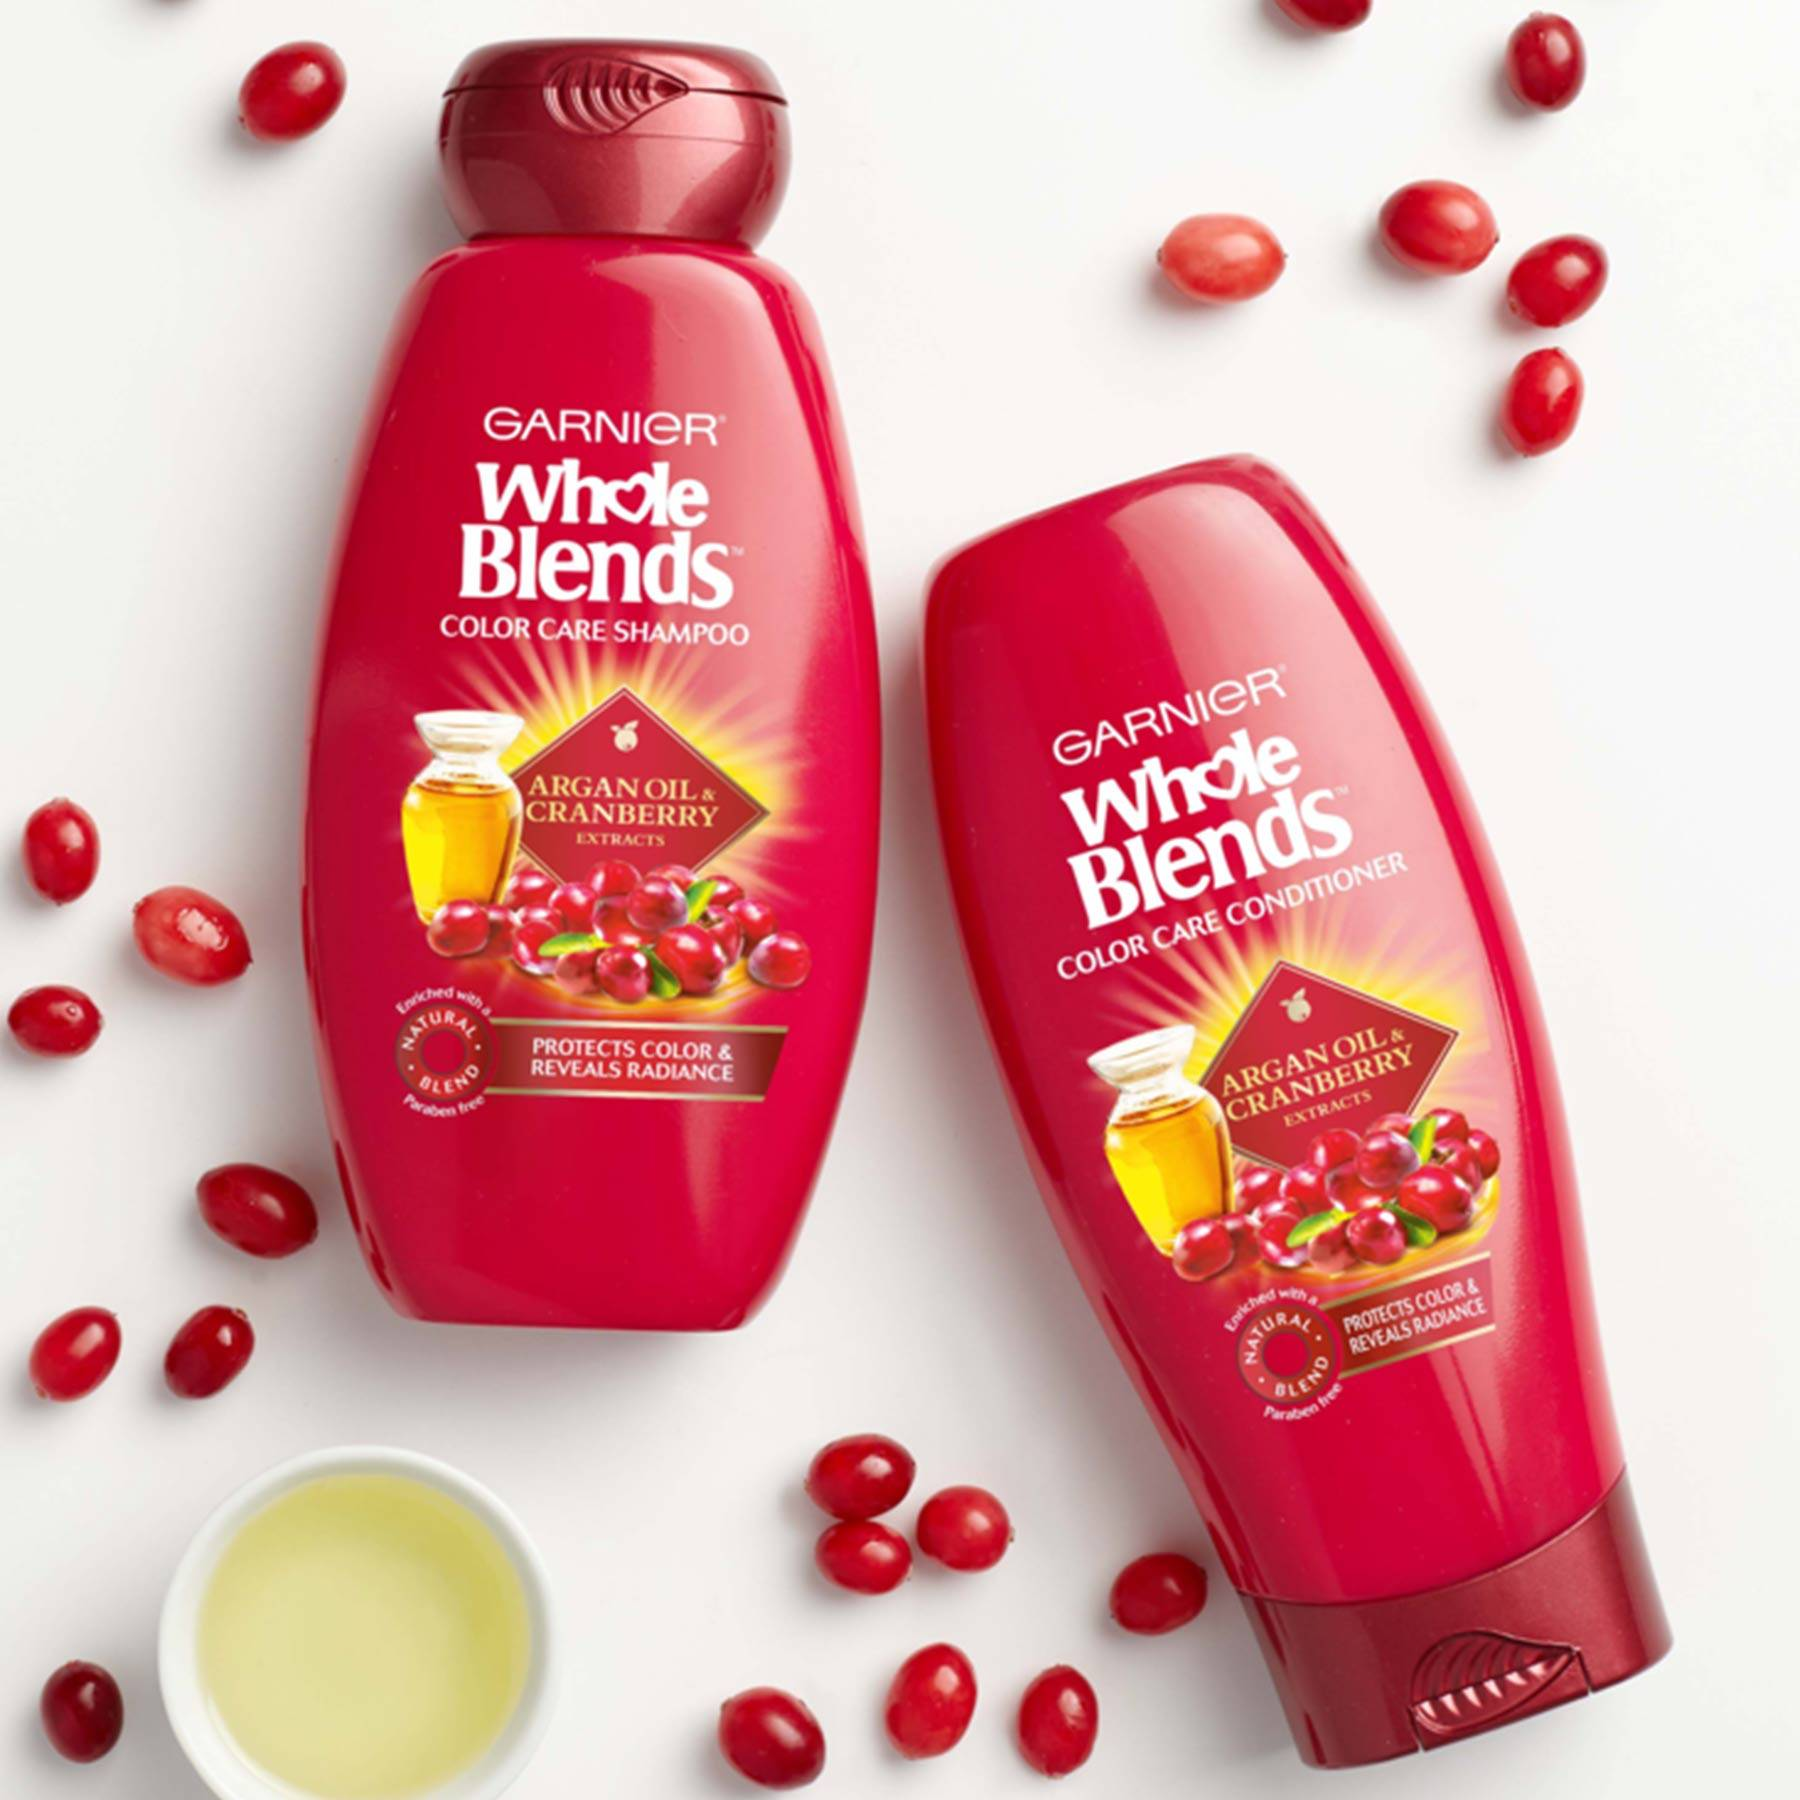 Whole Blends Color Care Shampoo with Argan Oil and Cranberry and Color Care Conditioner with Argan Oil and Cranberry on a white background strewn with whole cranberries and a ramekin of oil.